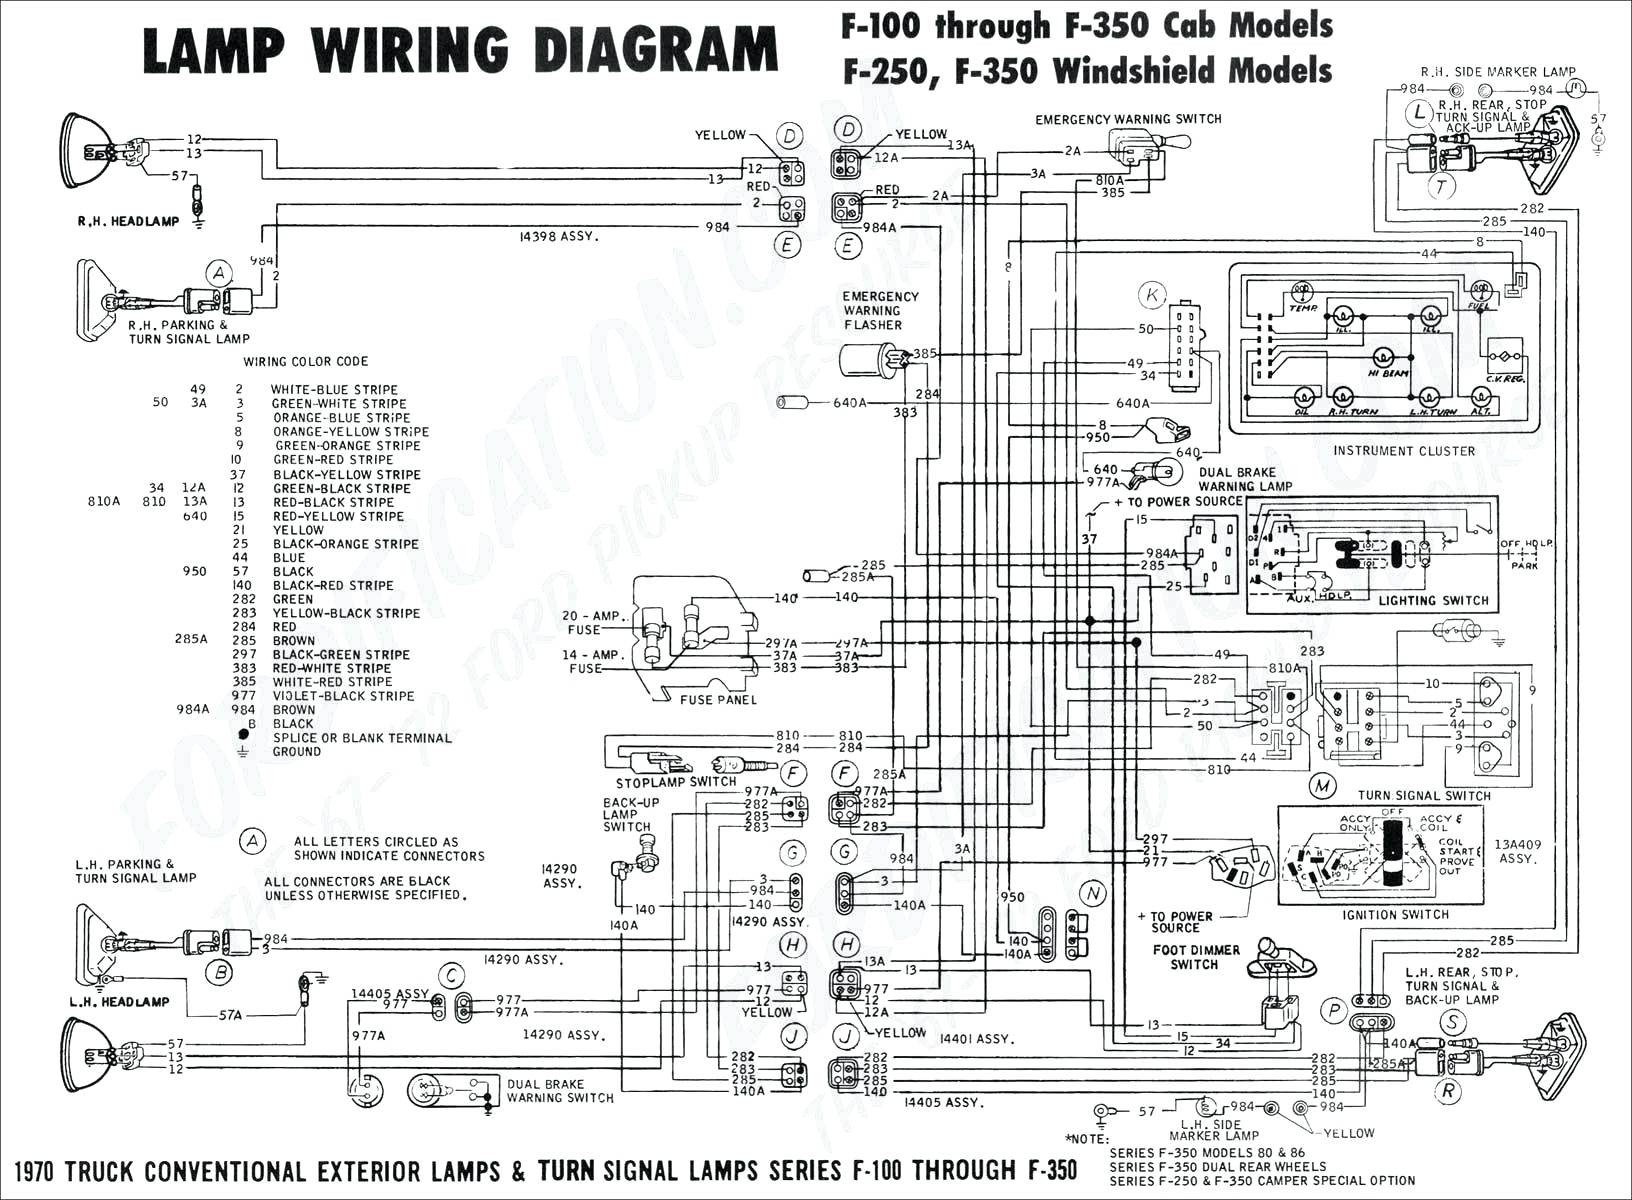 wiring diagram for 2015 chevy silverado 1500 wiring diagram toolbox  2015 chevrolet suburban wiring diagram #12